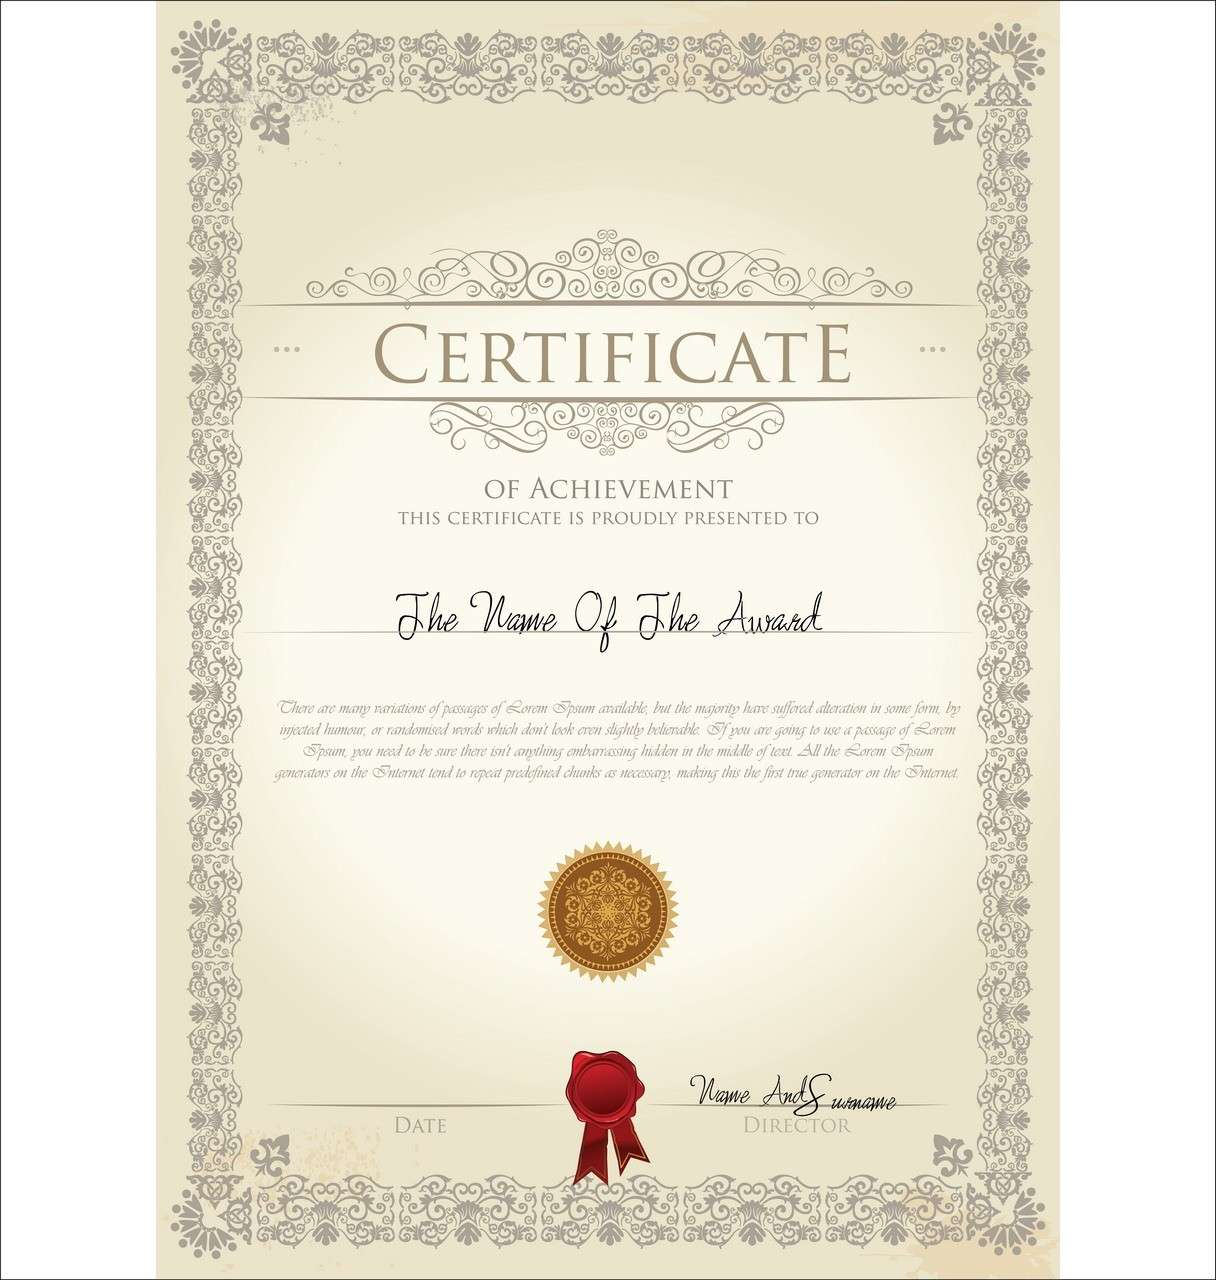 Certificate template 05 vector eps free download logo icons clipart certificate04 yelopaper Choice Image